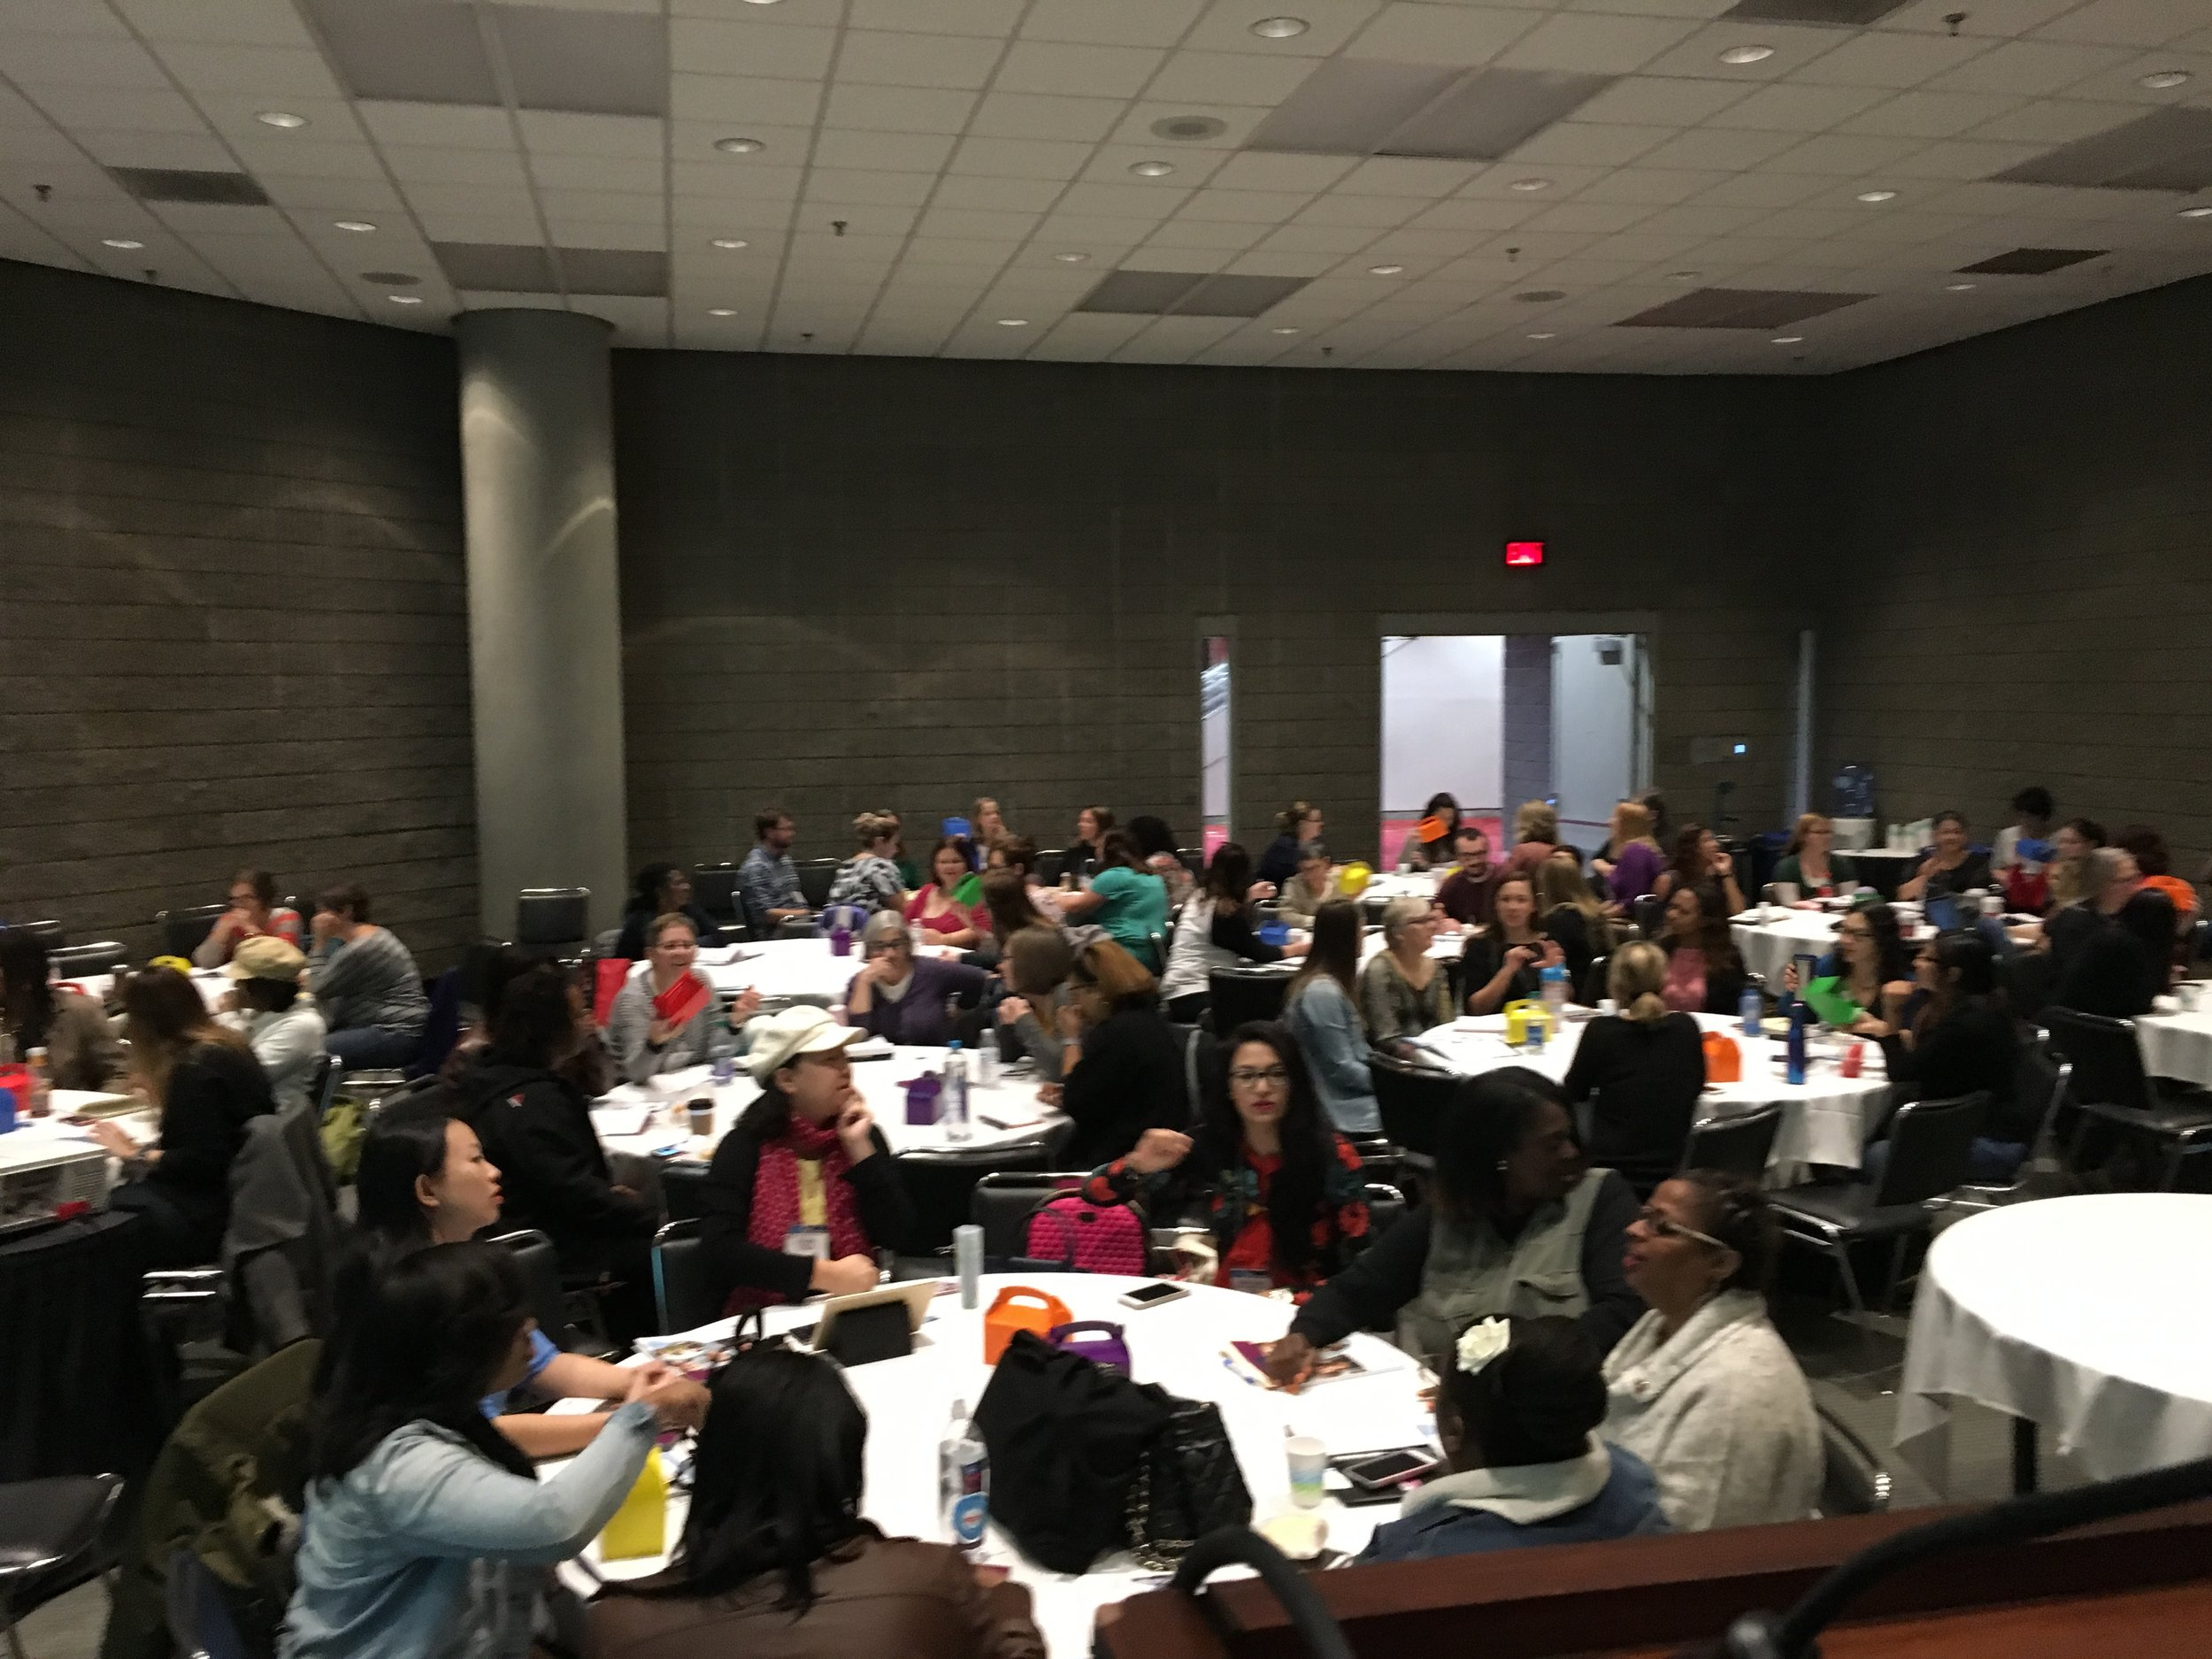 Over 80 early childhood professionals attended the session.